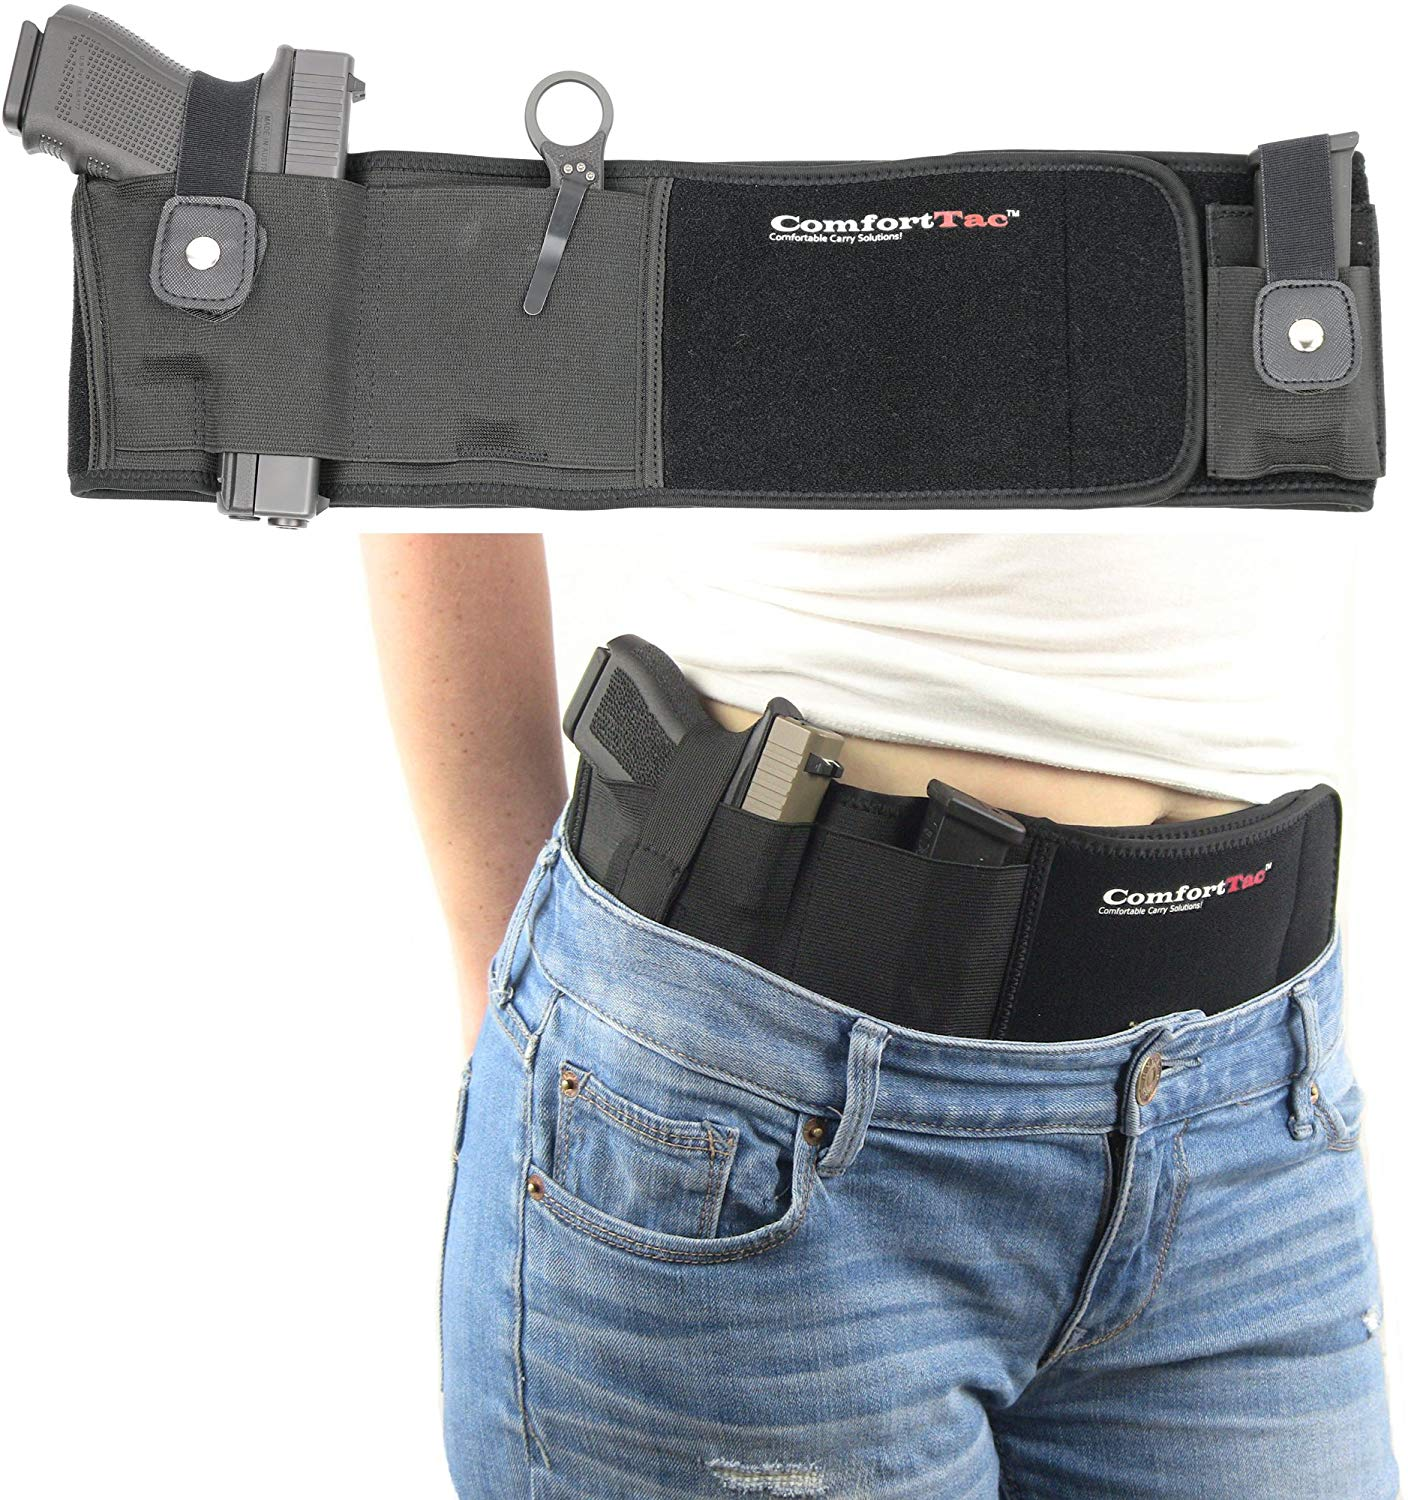 ComfortTac Original Ultimate Belly Band Holster